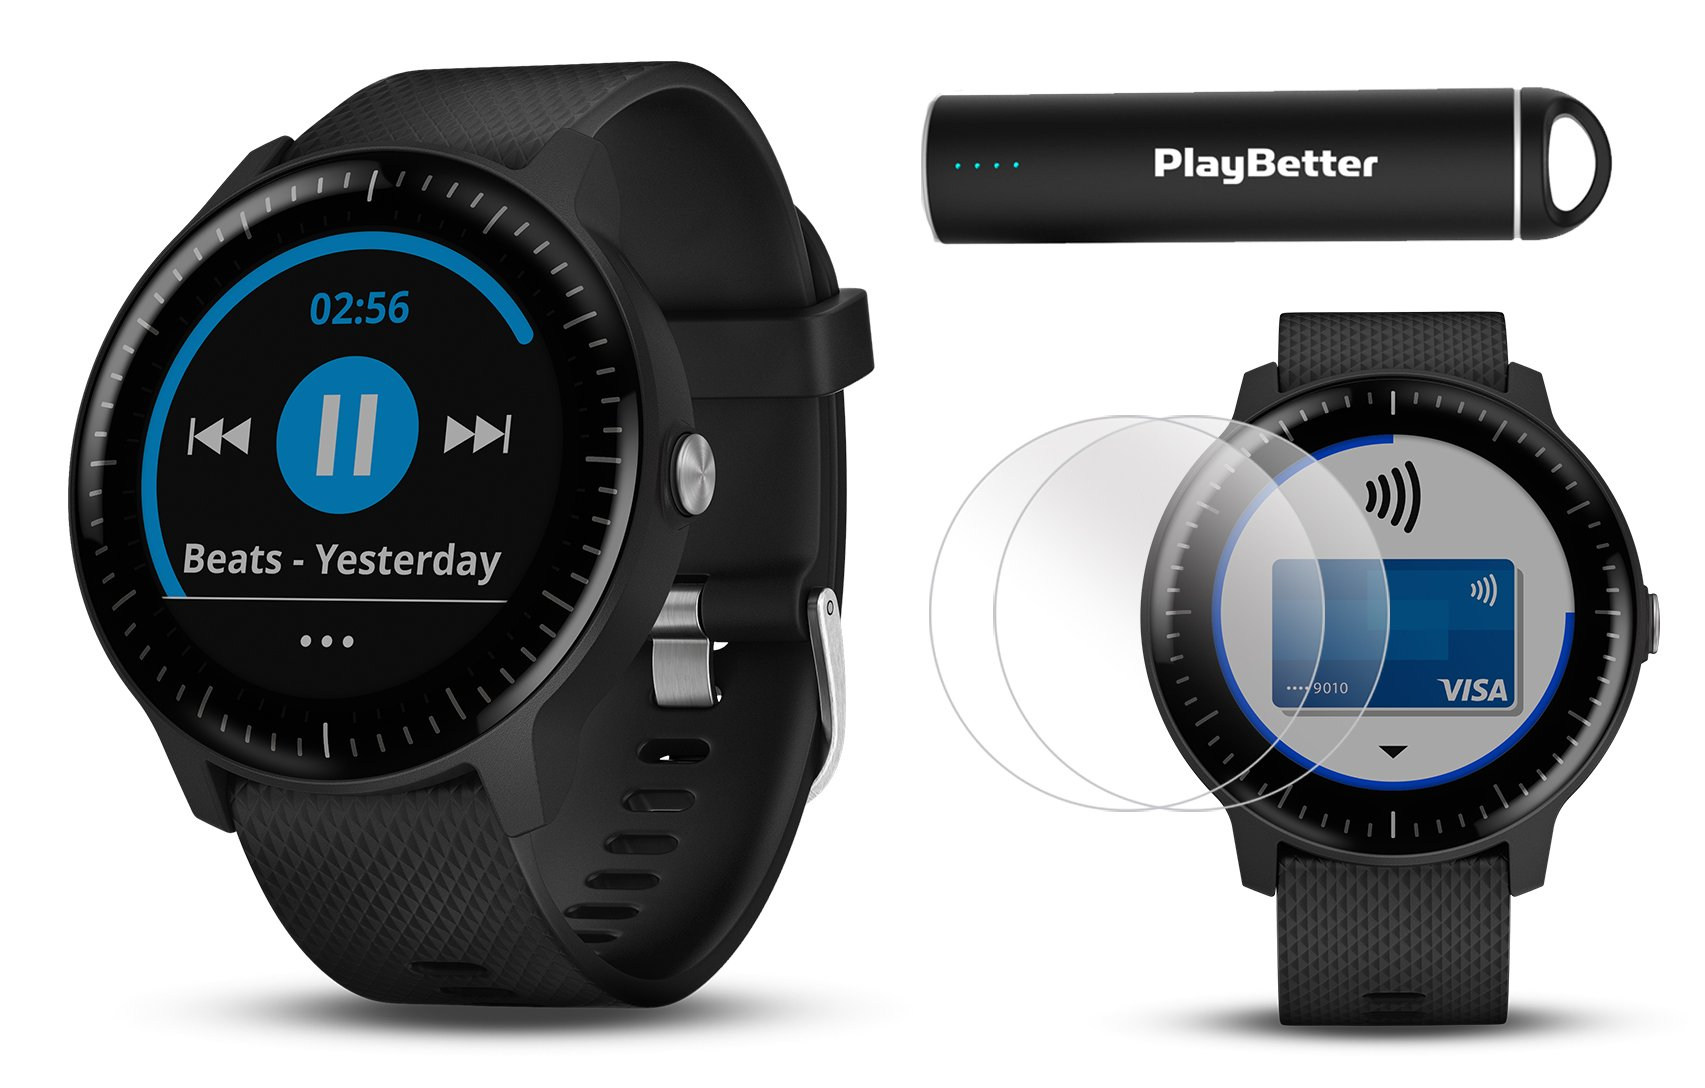 PlayBetter Garmin vivoactive 3 Music GPS Smartwatch Power Bundle | with HD Screen Protector Film (x4) USB Portable Charger | Spotify, Activity/Fitness Tracking, Garmin Pay (Black with Music & WiFi) by PlayBetter